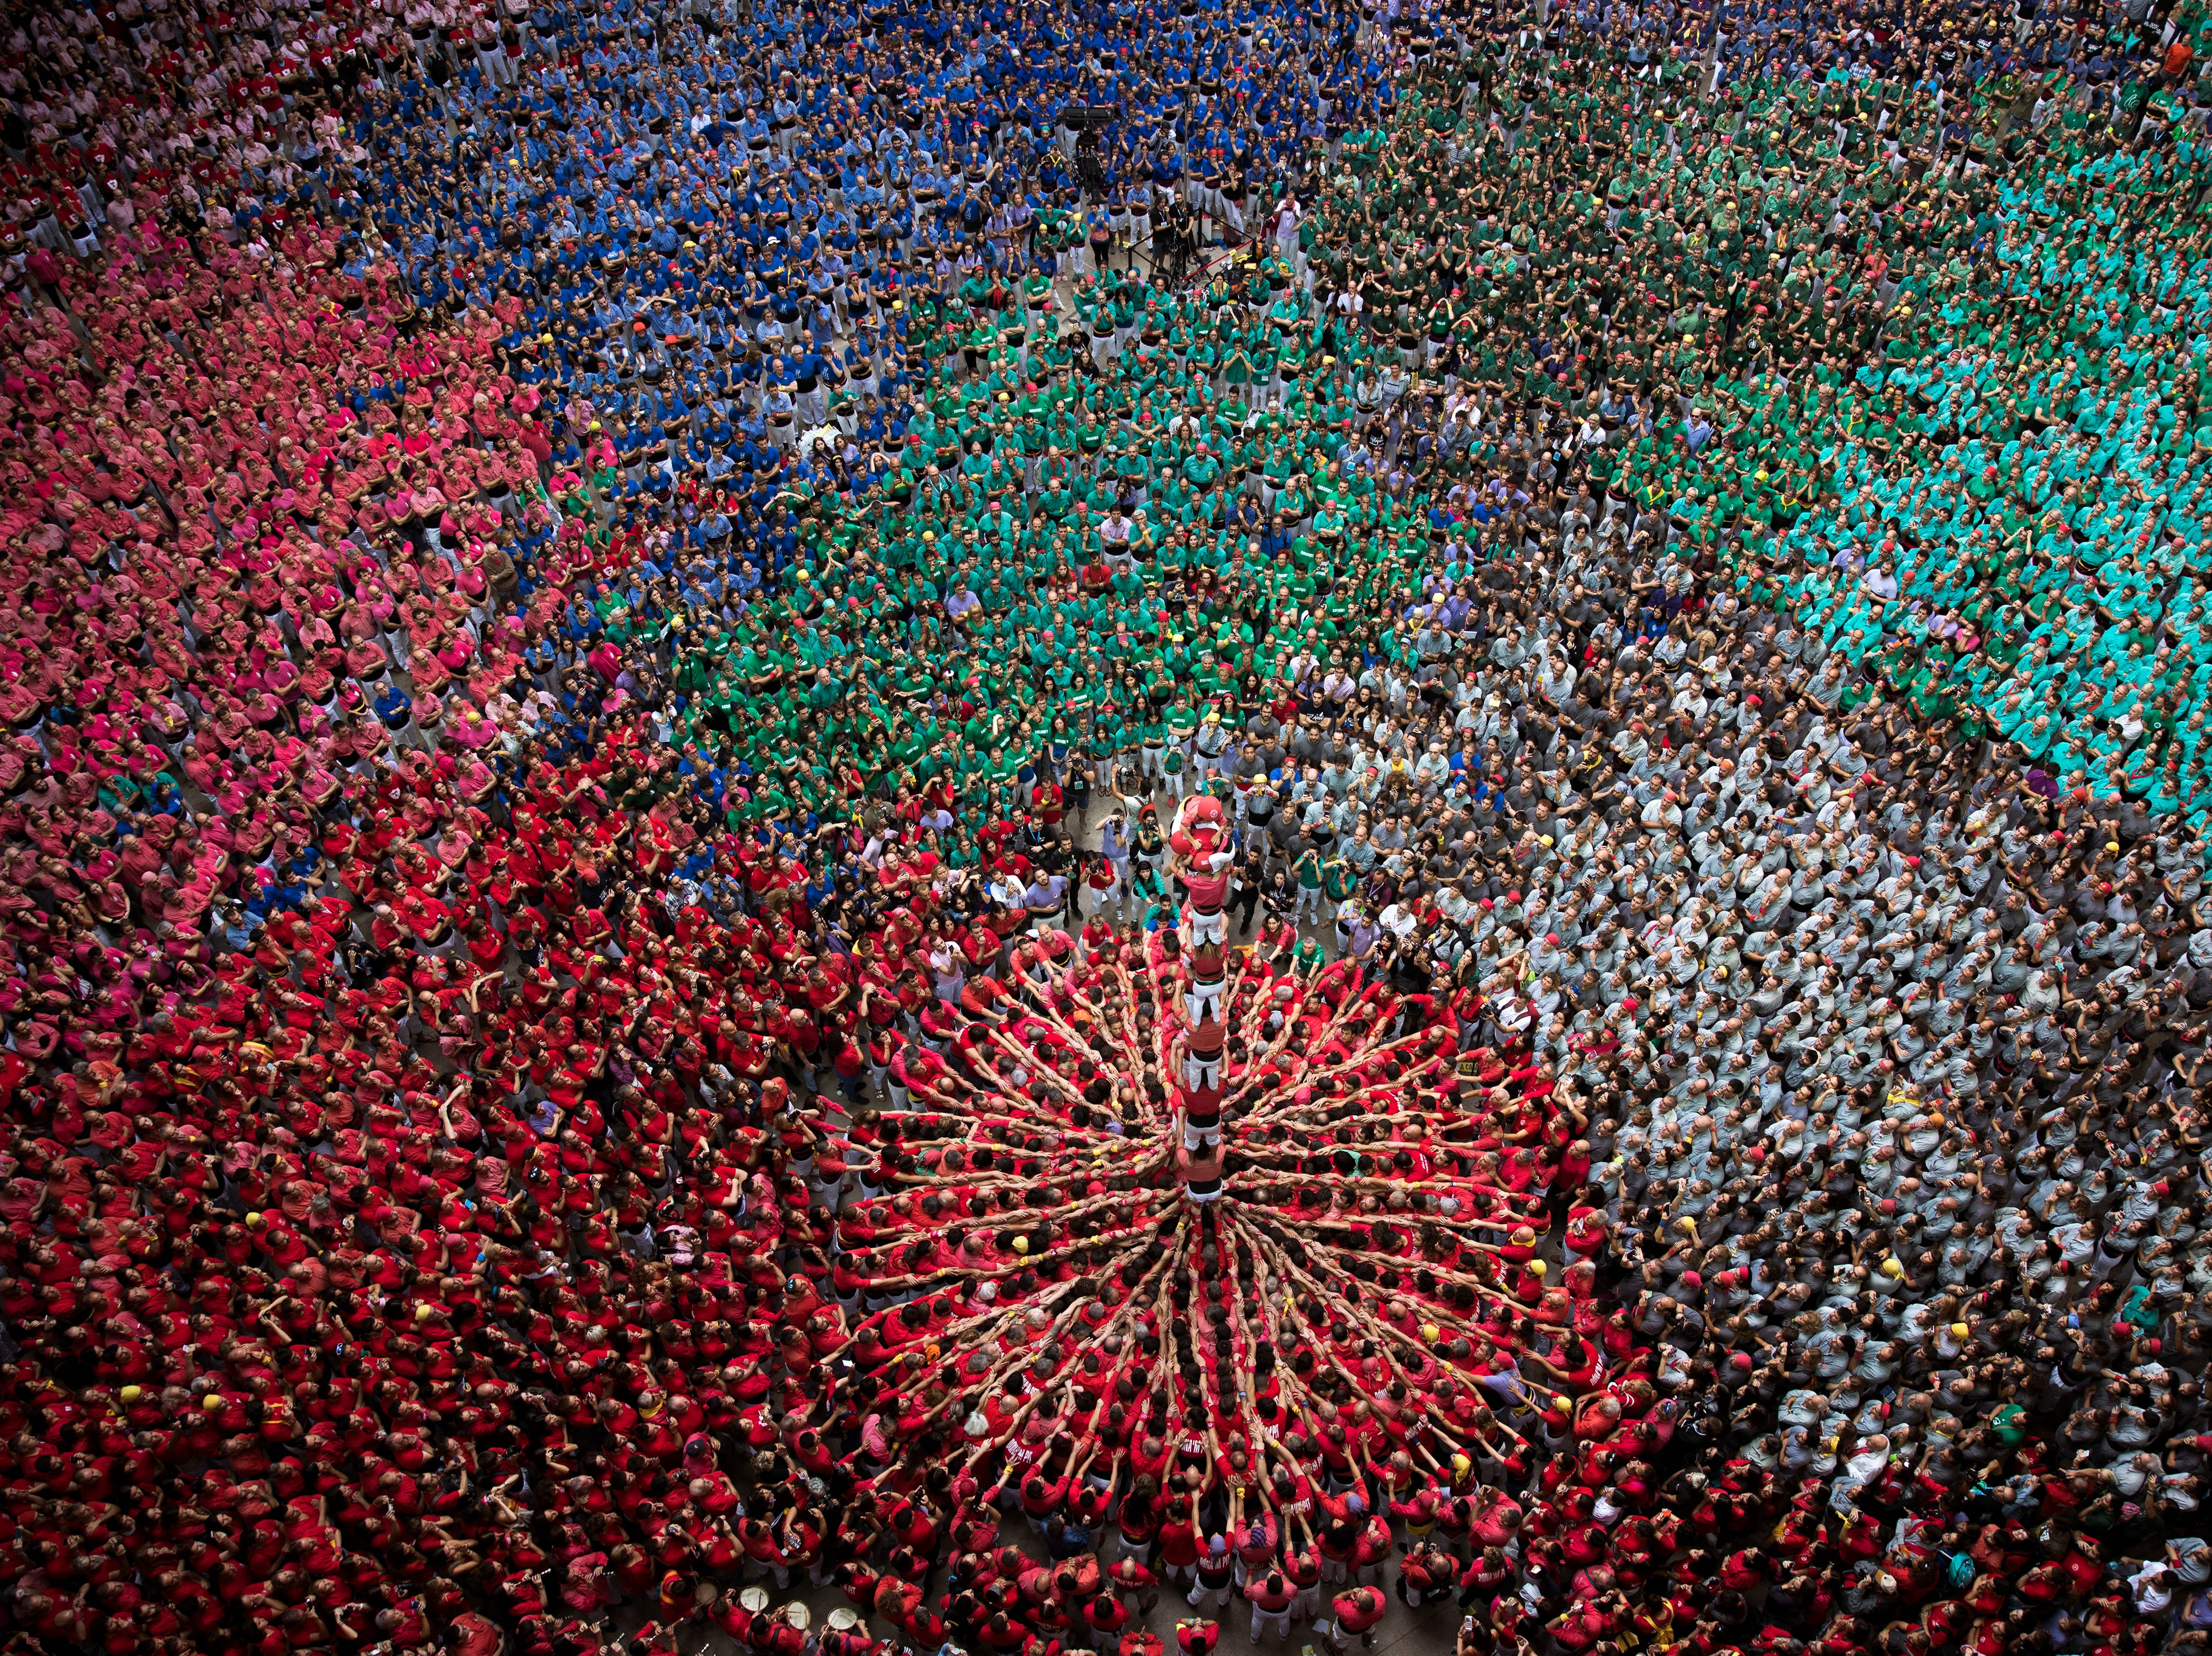 """Members of the """"Colla Joves Xiquets de Valls"""" complete their human tower during the 27th Human Tower Competition in Tarragona, Spain, on Oct. 7, 2018."""